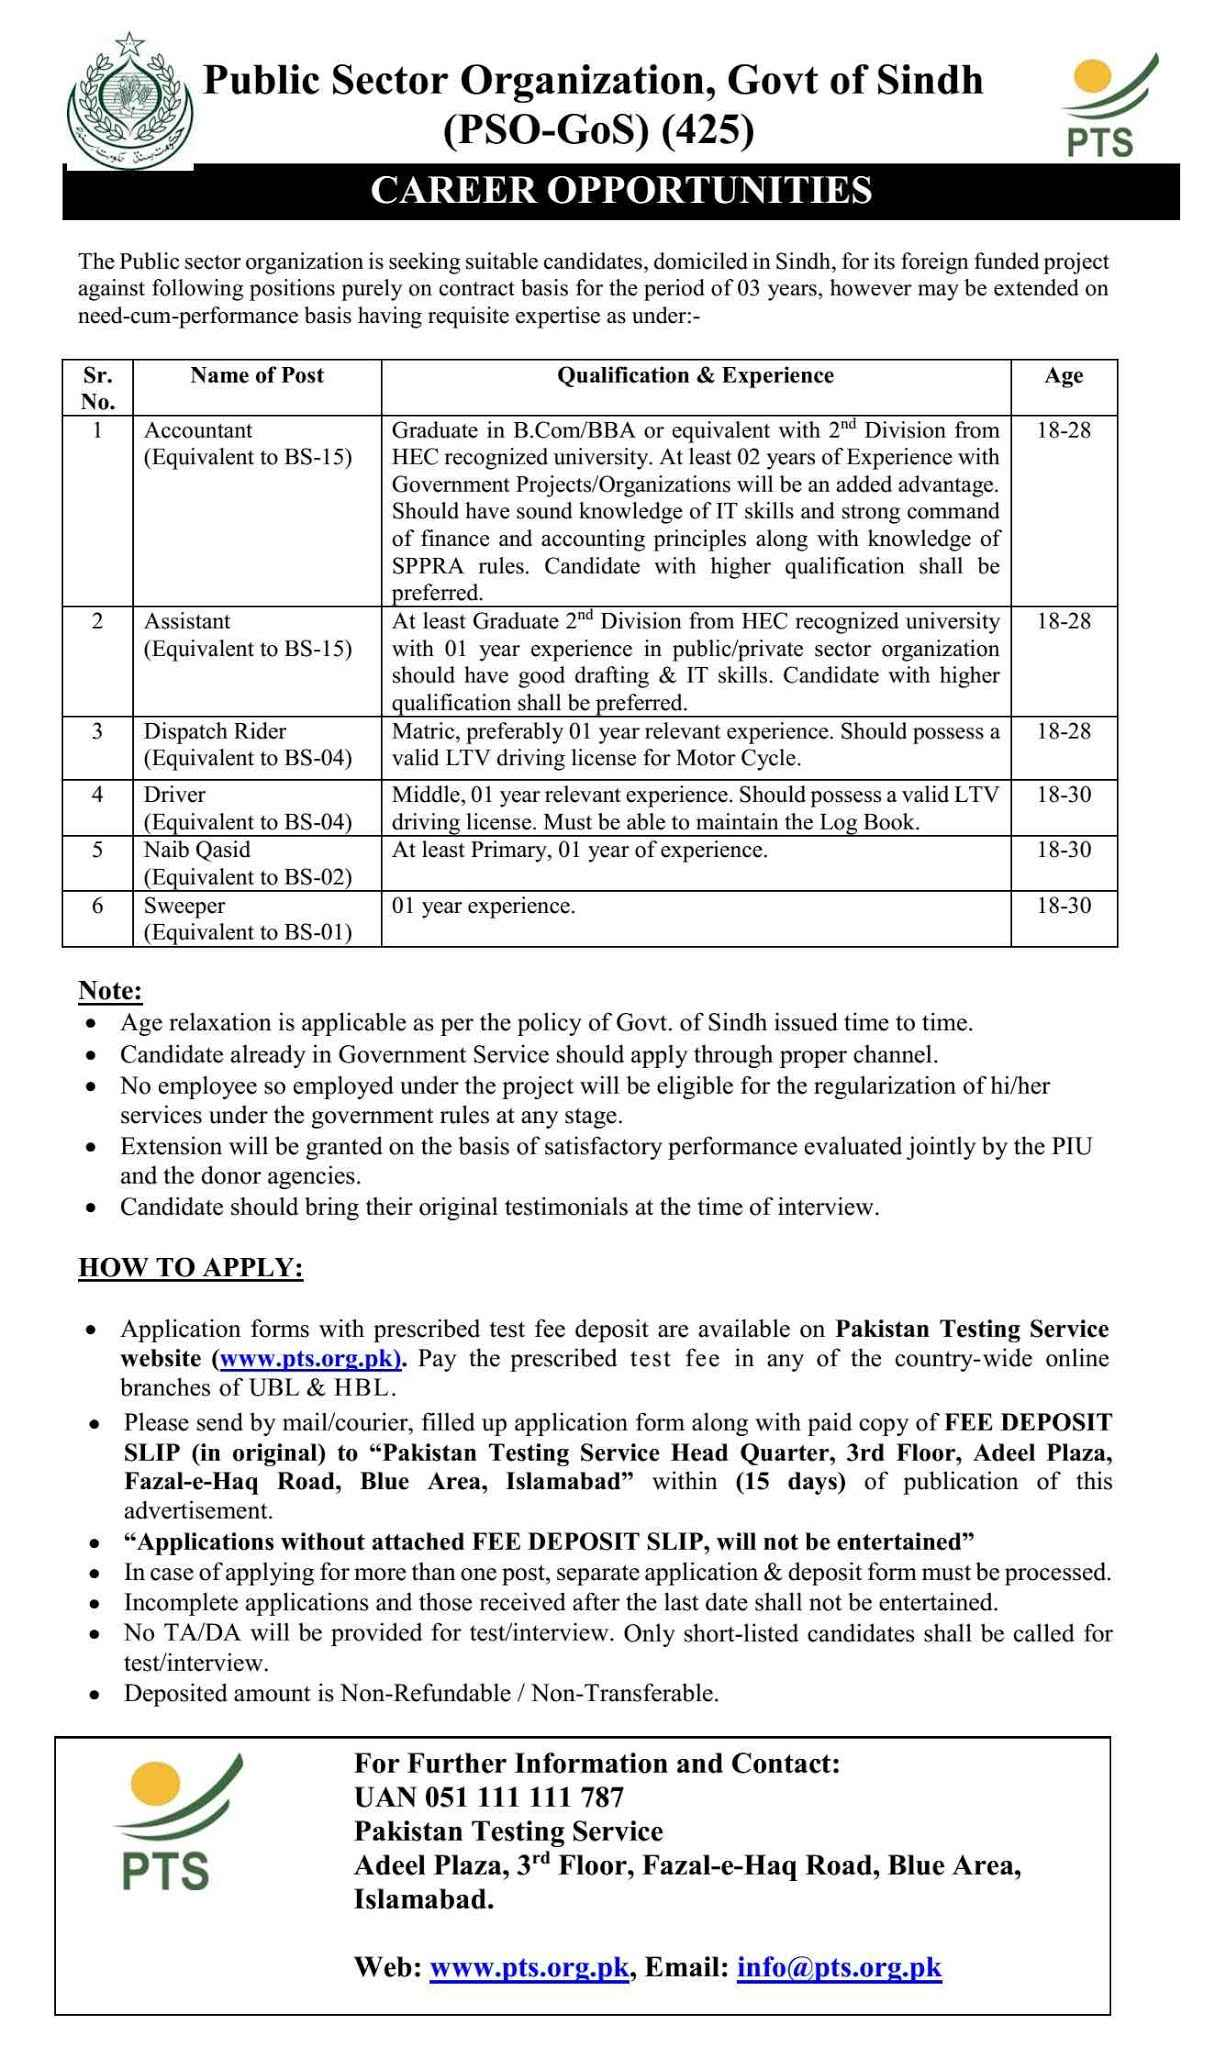 Pakistan Testing Service PTS Jobs for Public Sector Organization, Govt of Sindh (PSO-Sindh) Jobs 2020